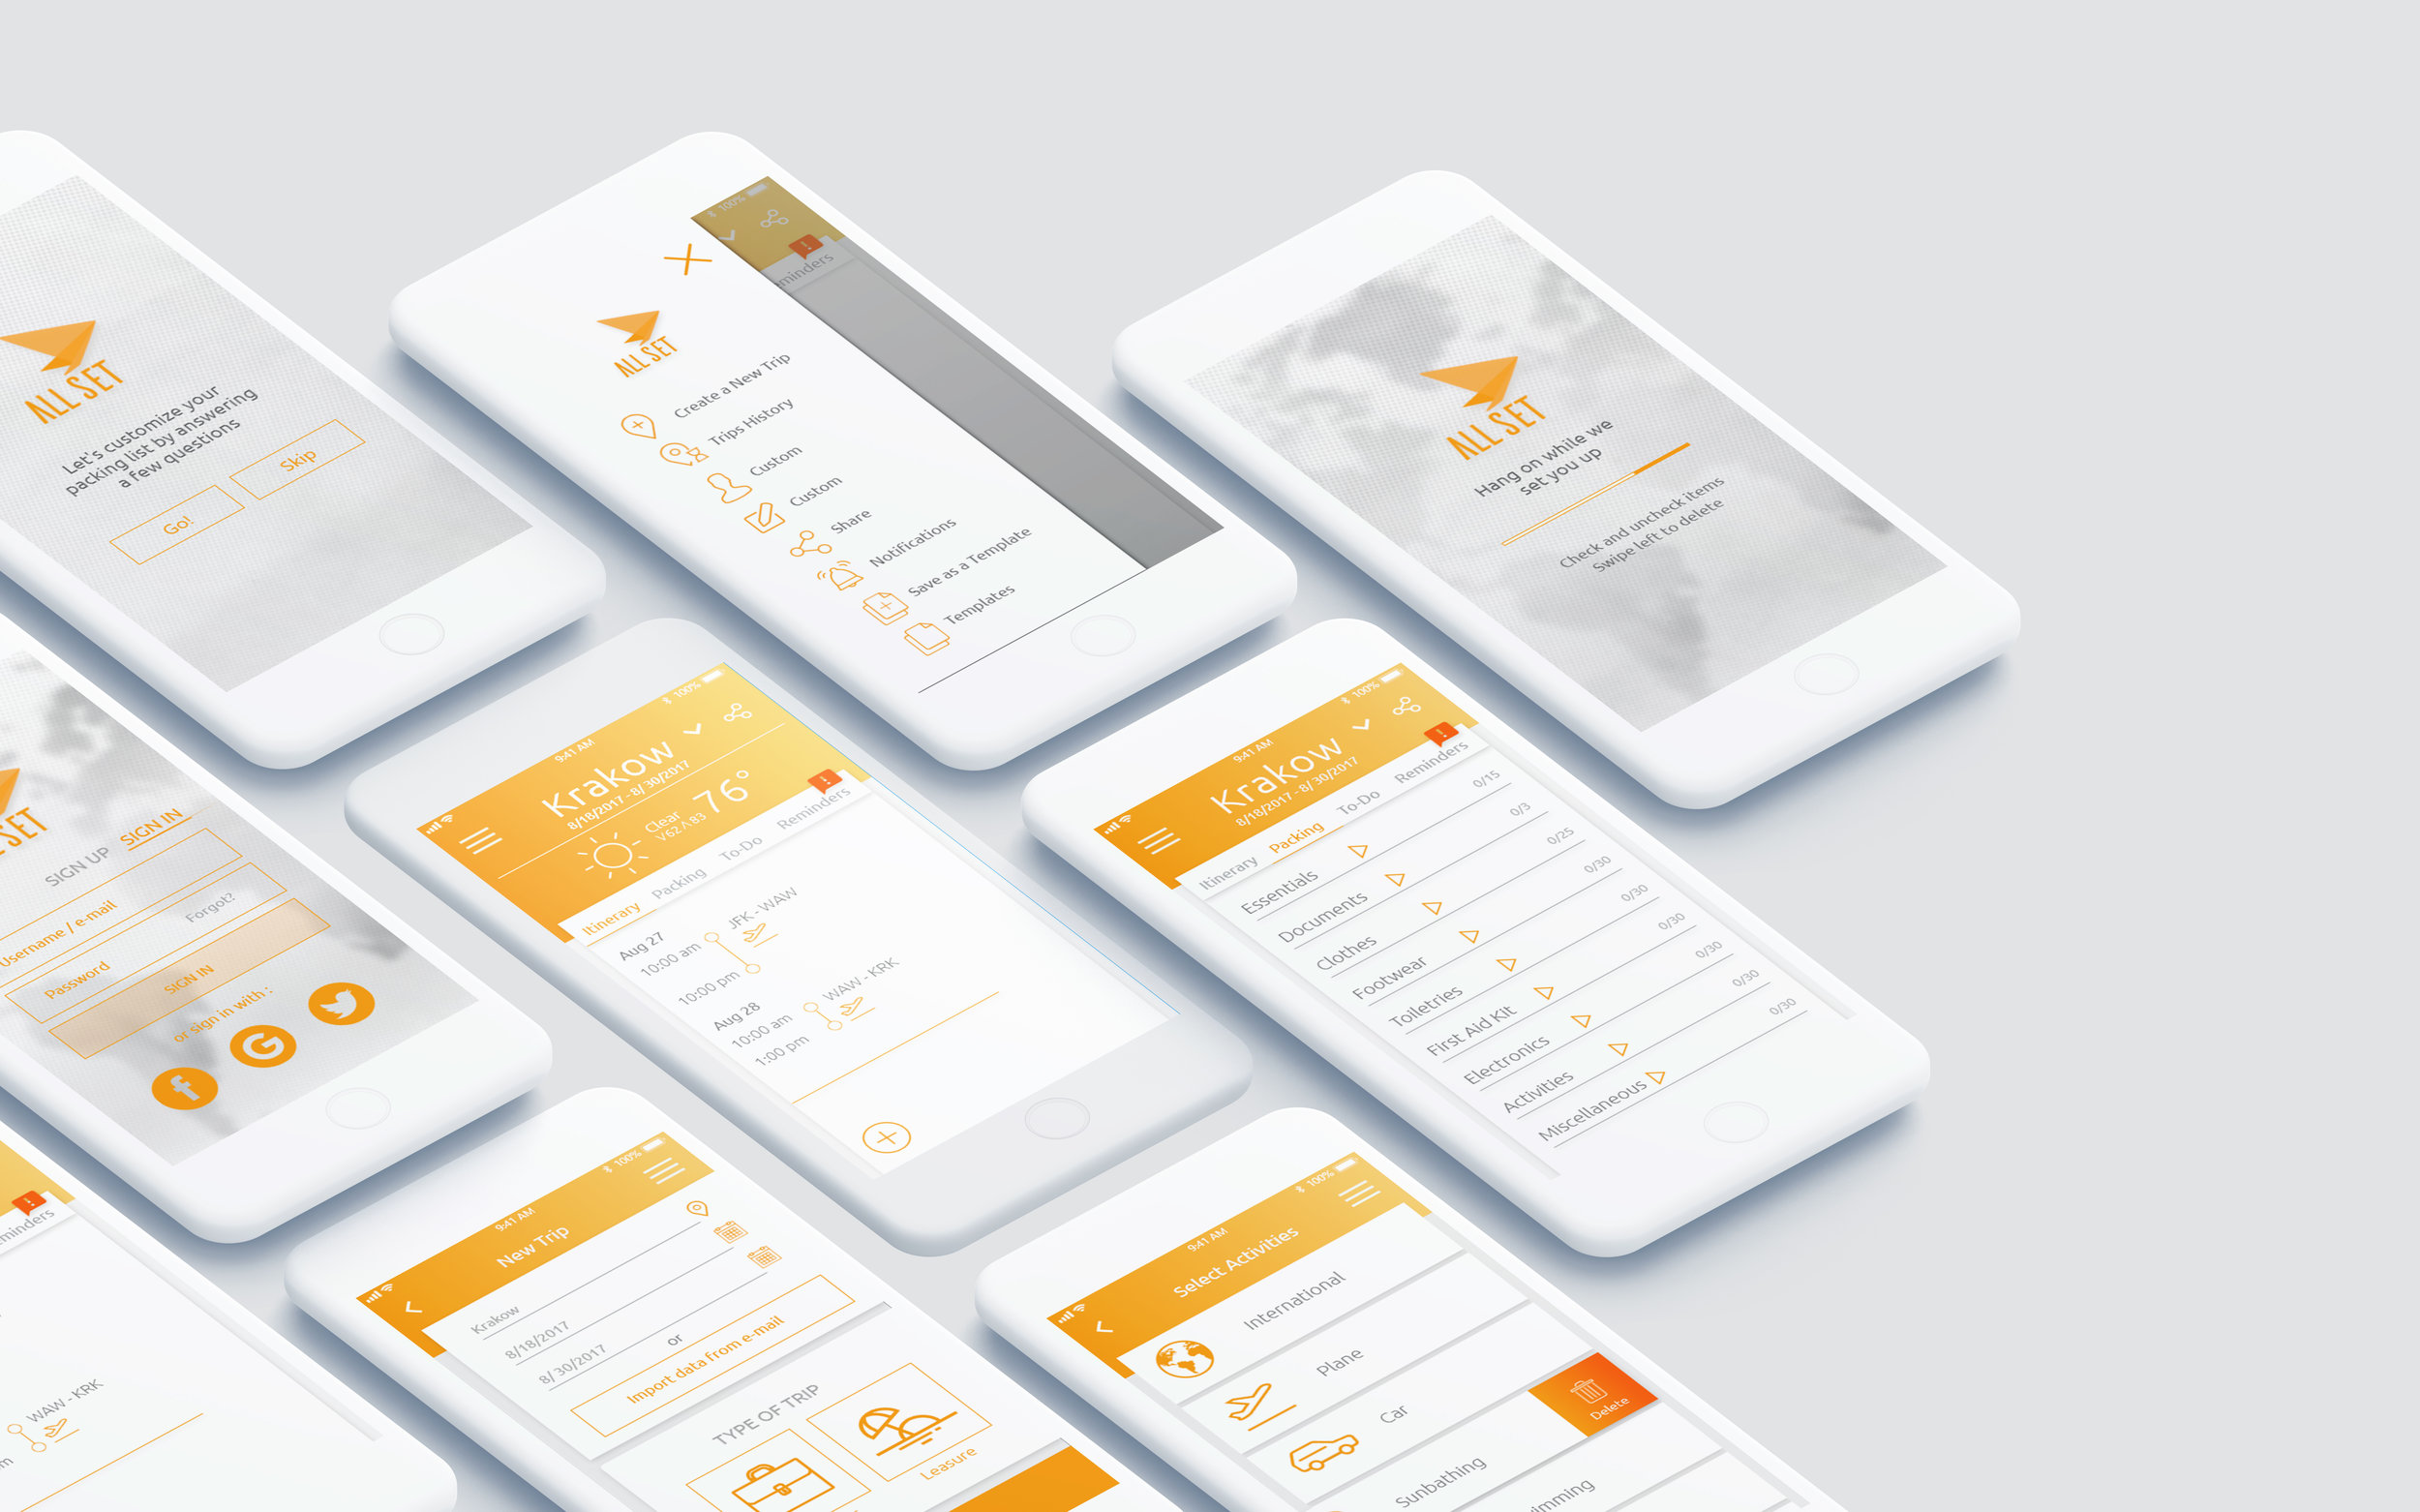 ALL SET MOBILE APP - UX/UI DesignDeliverables: User Research, Competitor Analysis, Personas, CJM, User Flow, Sketches, Lo-Fi & Med-Fi Wireframes, Interaction Map, Animated Prototype, User Testing